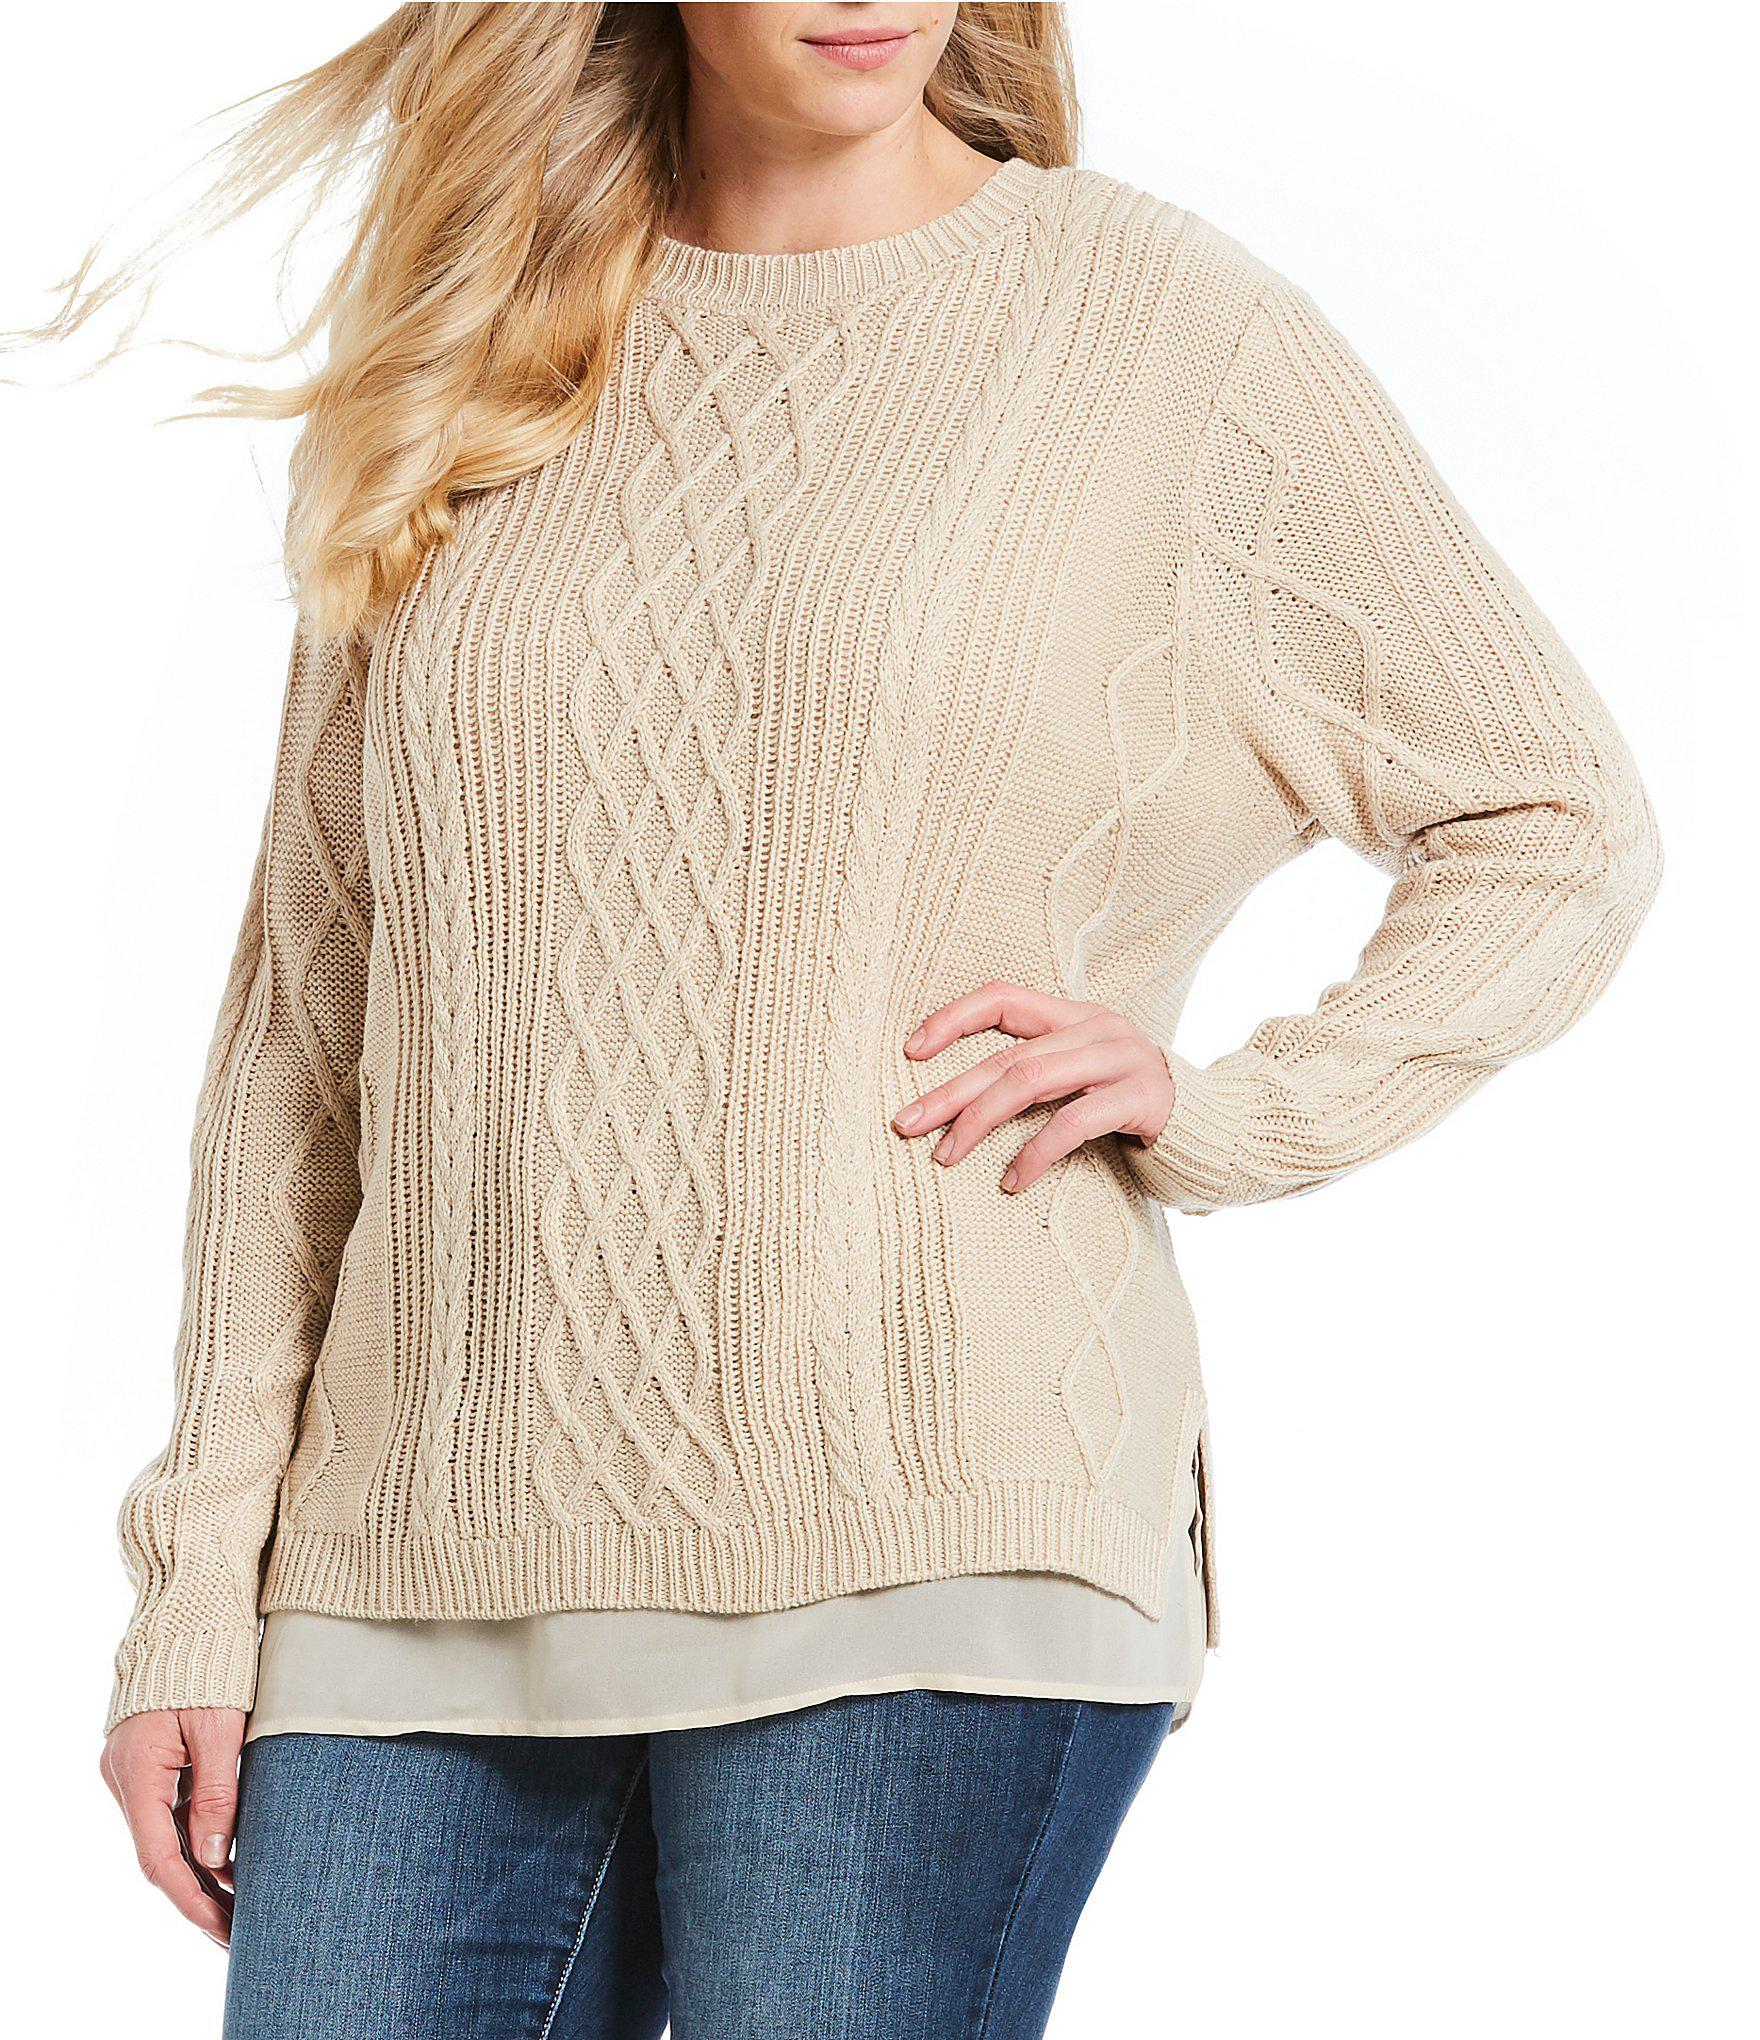 e2ff1d0768bf5 Lyst - Jessica Simpson Plus Size Arylic Lurex Sweater